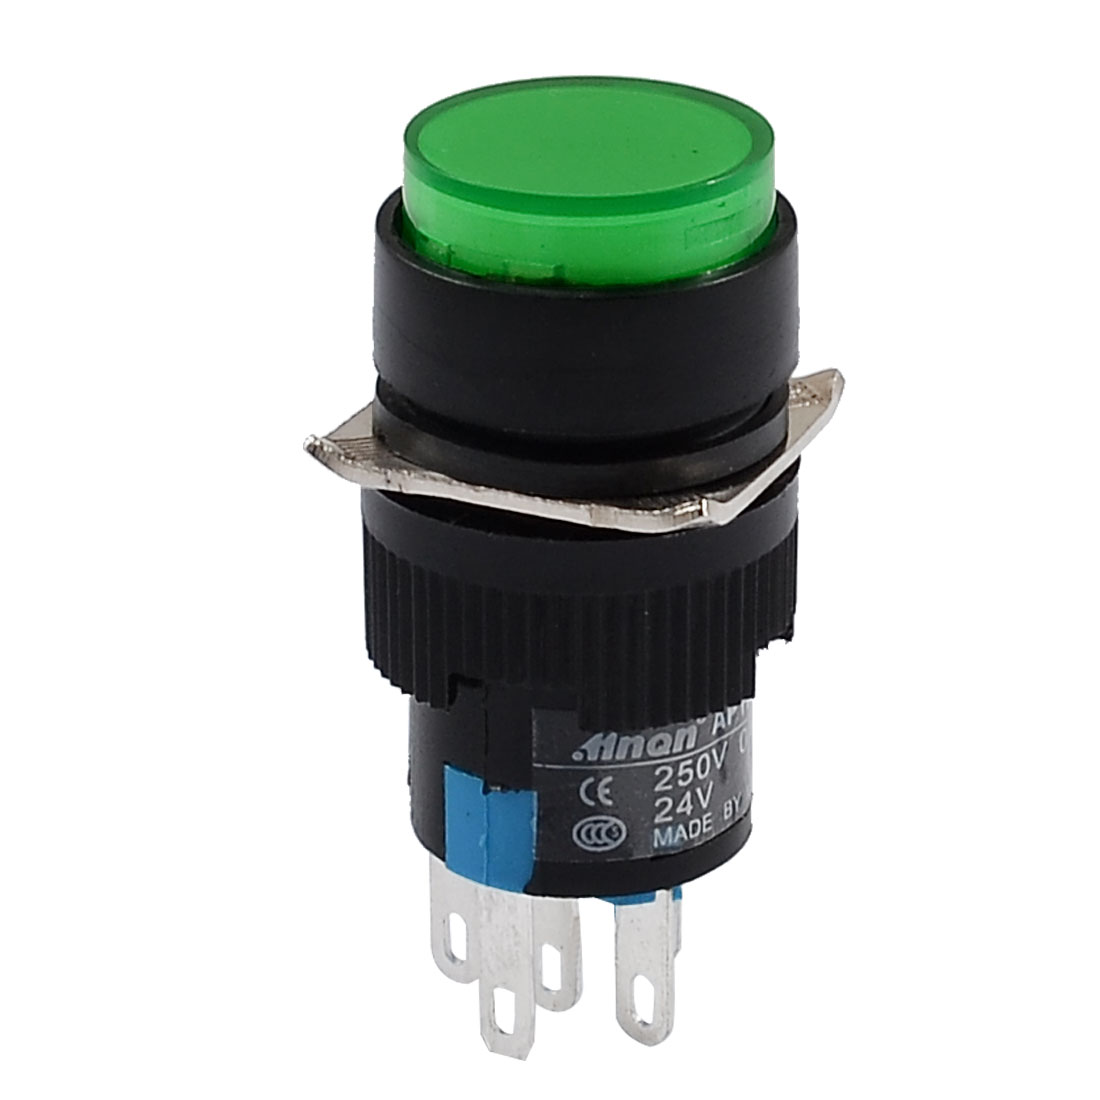 DC 24V Green Cap Self-locking Press Button Push Switch w Light